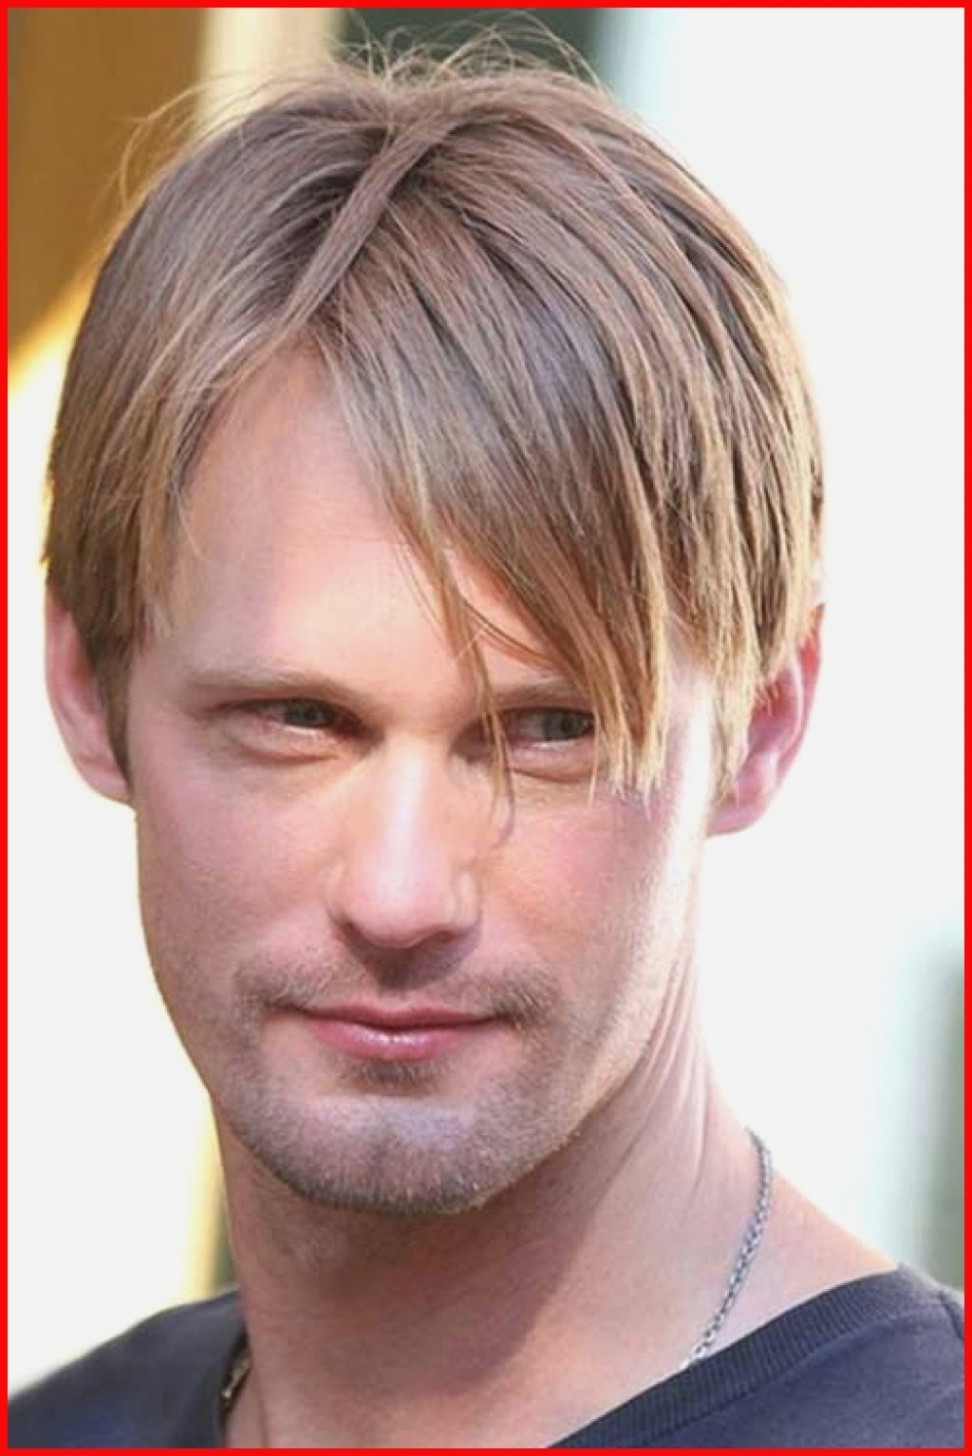 Haircut For Thin Straight Hair Male  Wavy Haircut